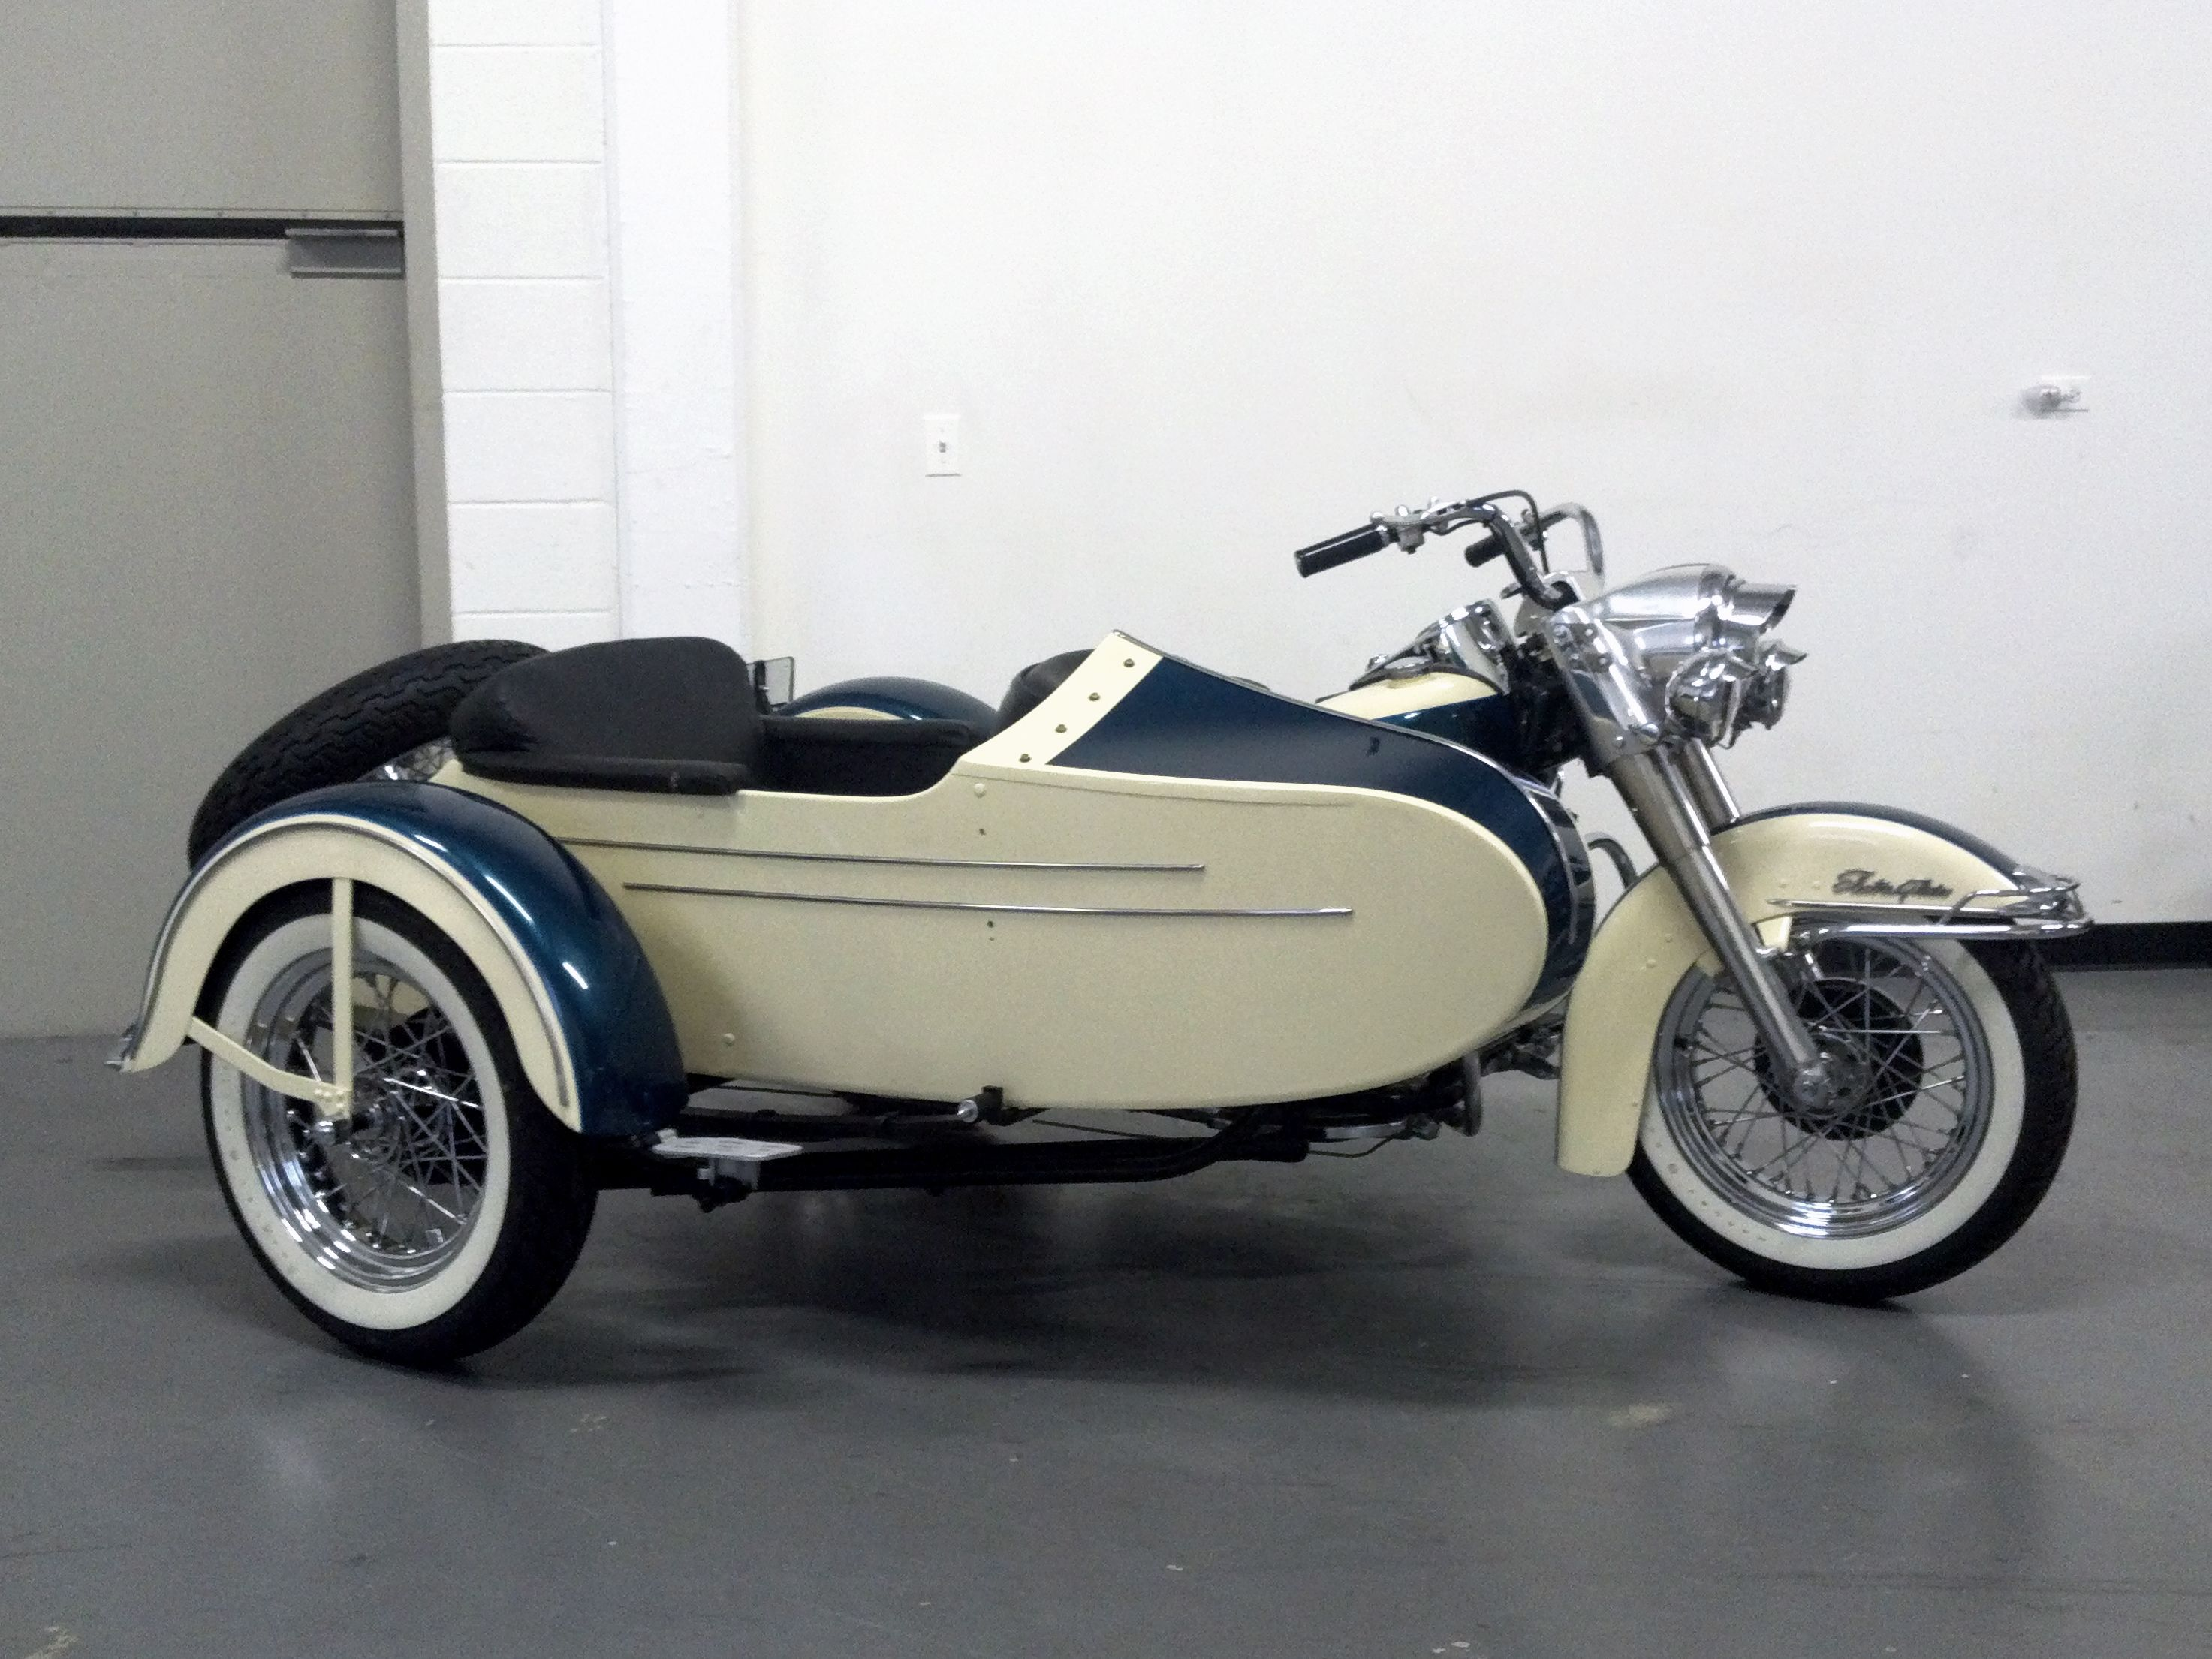 1966 FL 74 Shovelhead 1 of 50 made with factory sidecar